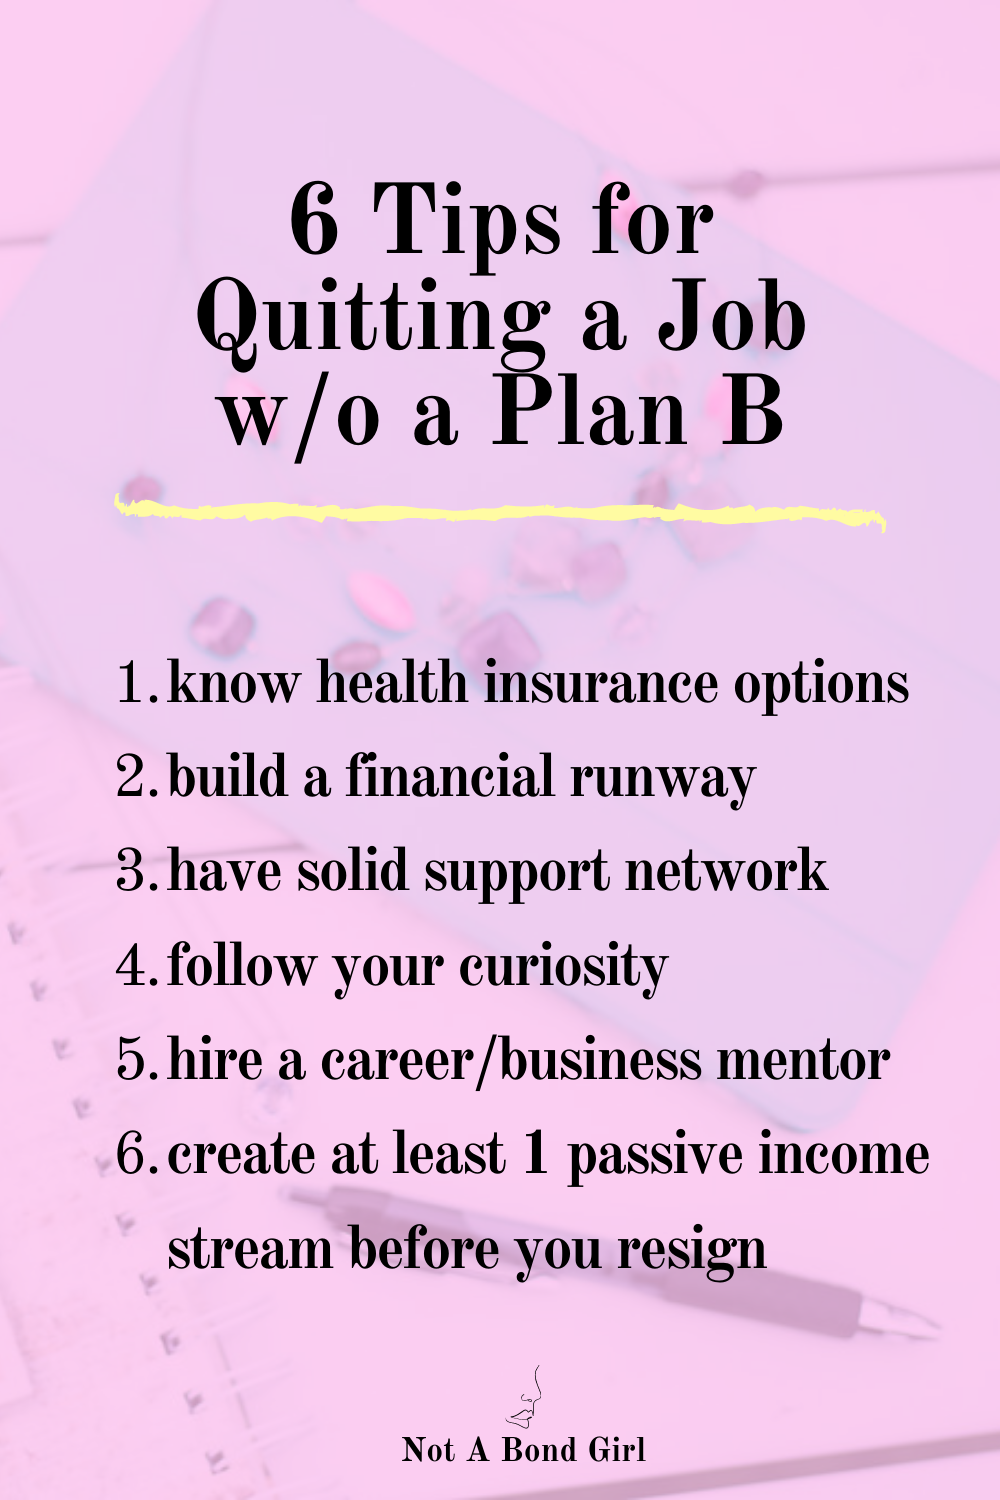 6 Tips for Quitting Your 9-5 Job without a Plan B